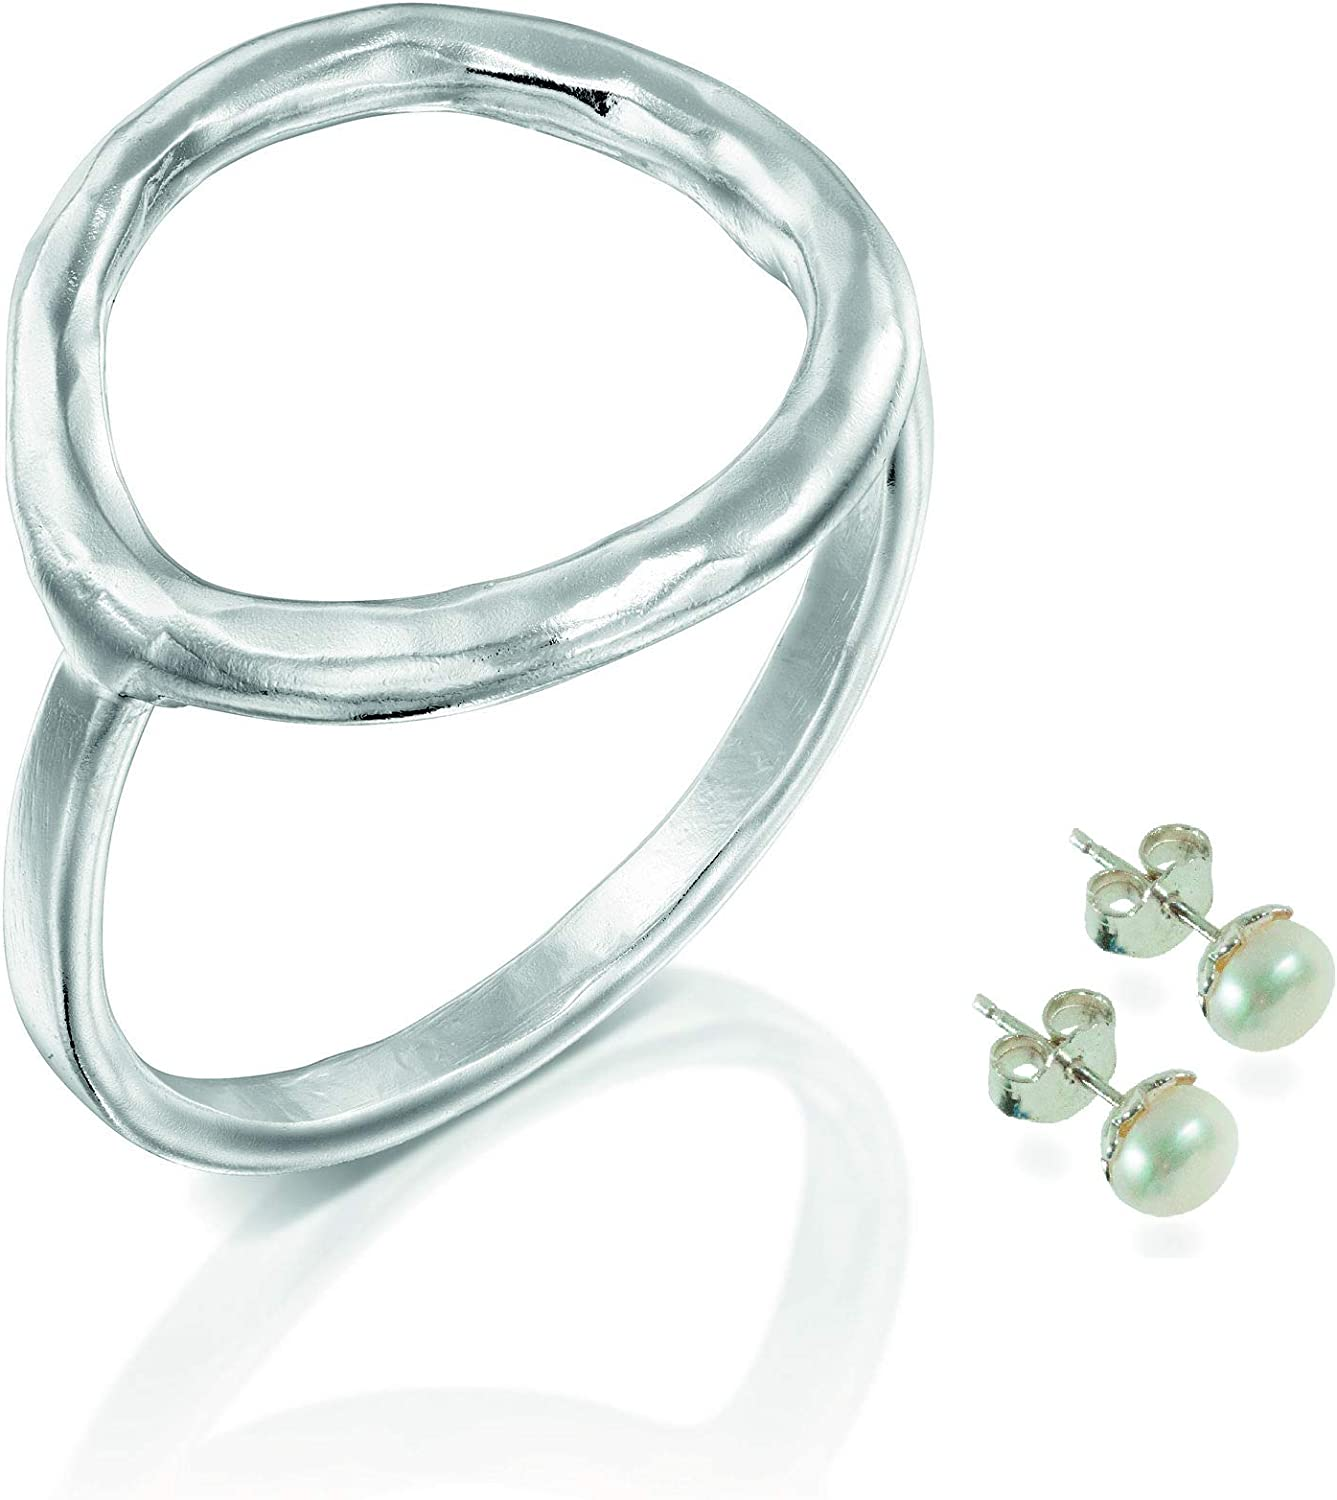 FABIN JEWELRY The Circle' - Open Symbol Popular brand quality assurance in the world Karma a Ring of Circle